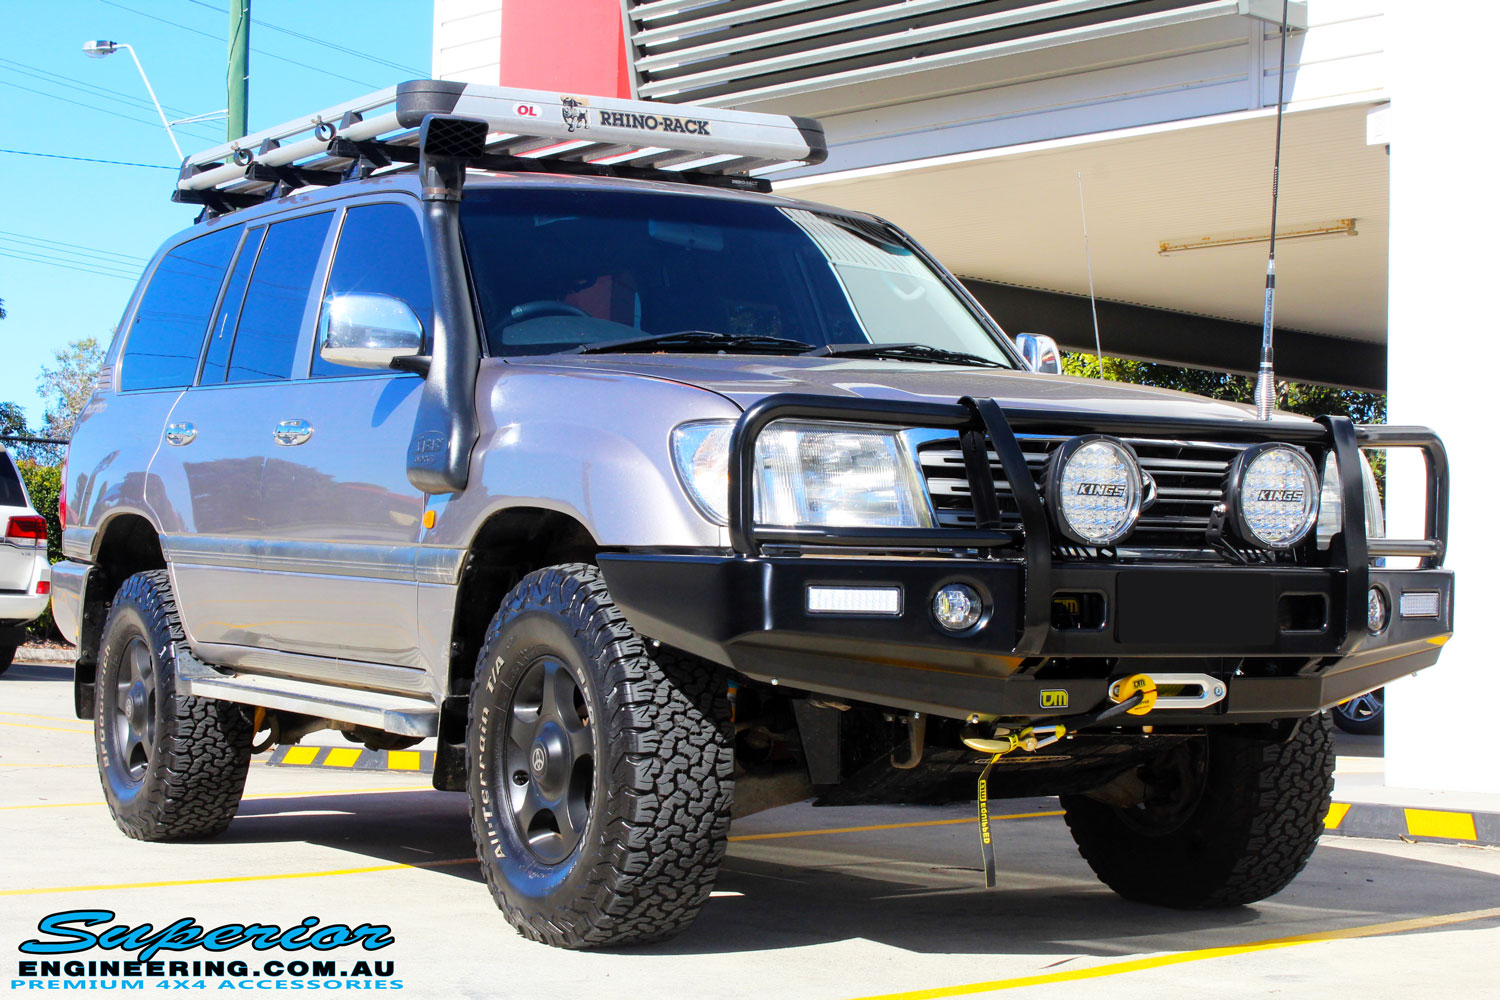 "Right front side view of a Silver Toyota 100 Series Landcruiser after fitment of a 2"" Inch Lift Kit with Airbags"